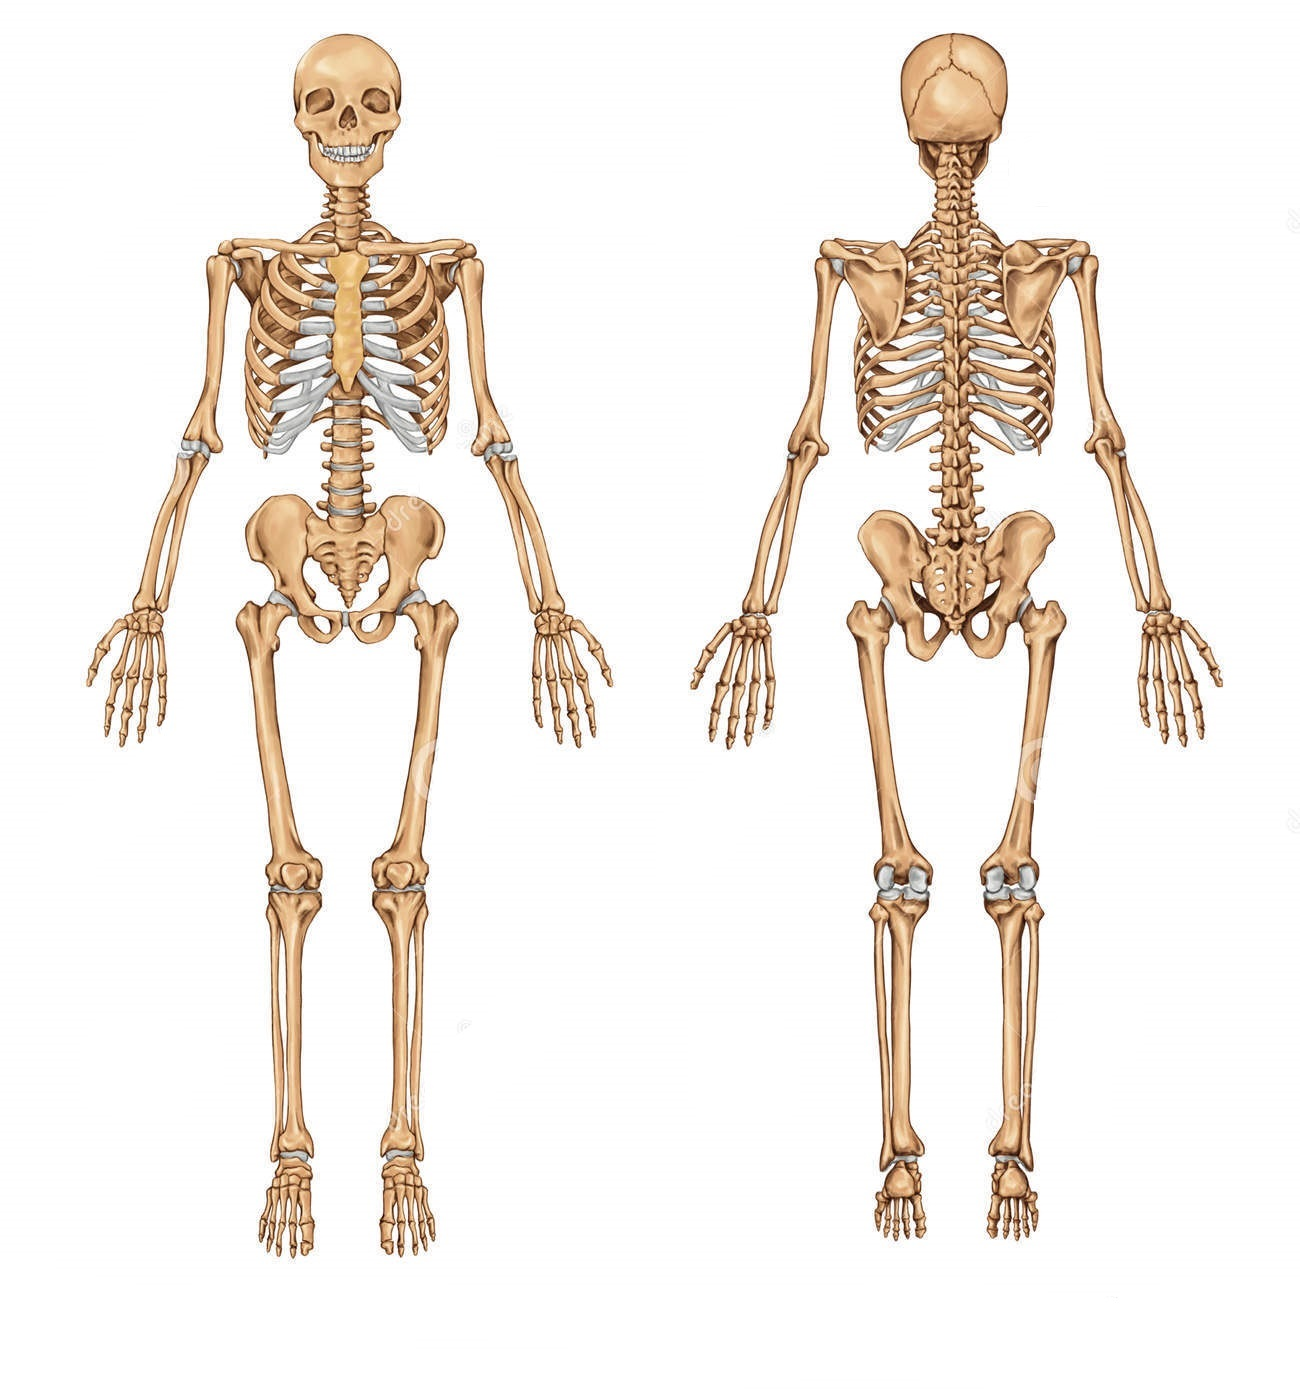 human-skeleton-posterior-anterior-view-didactic-board-anatomy-human-bony-system-29868489.jpg